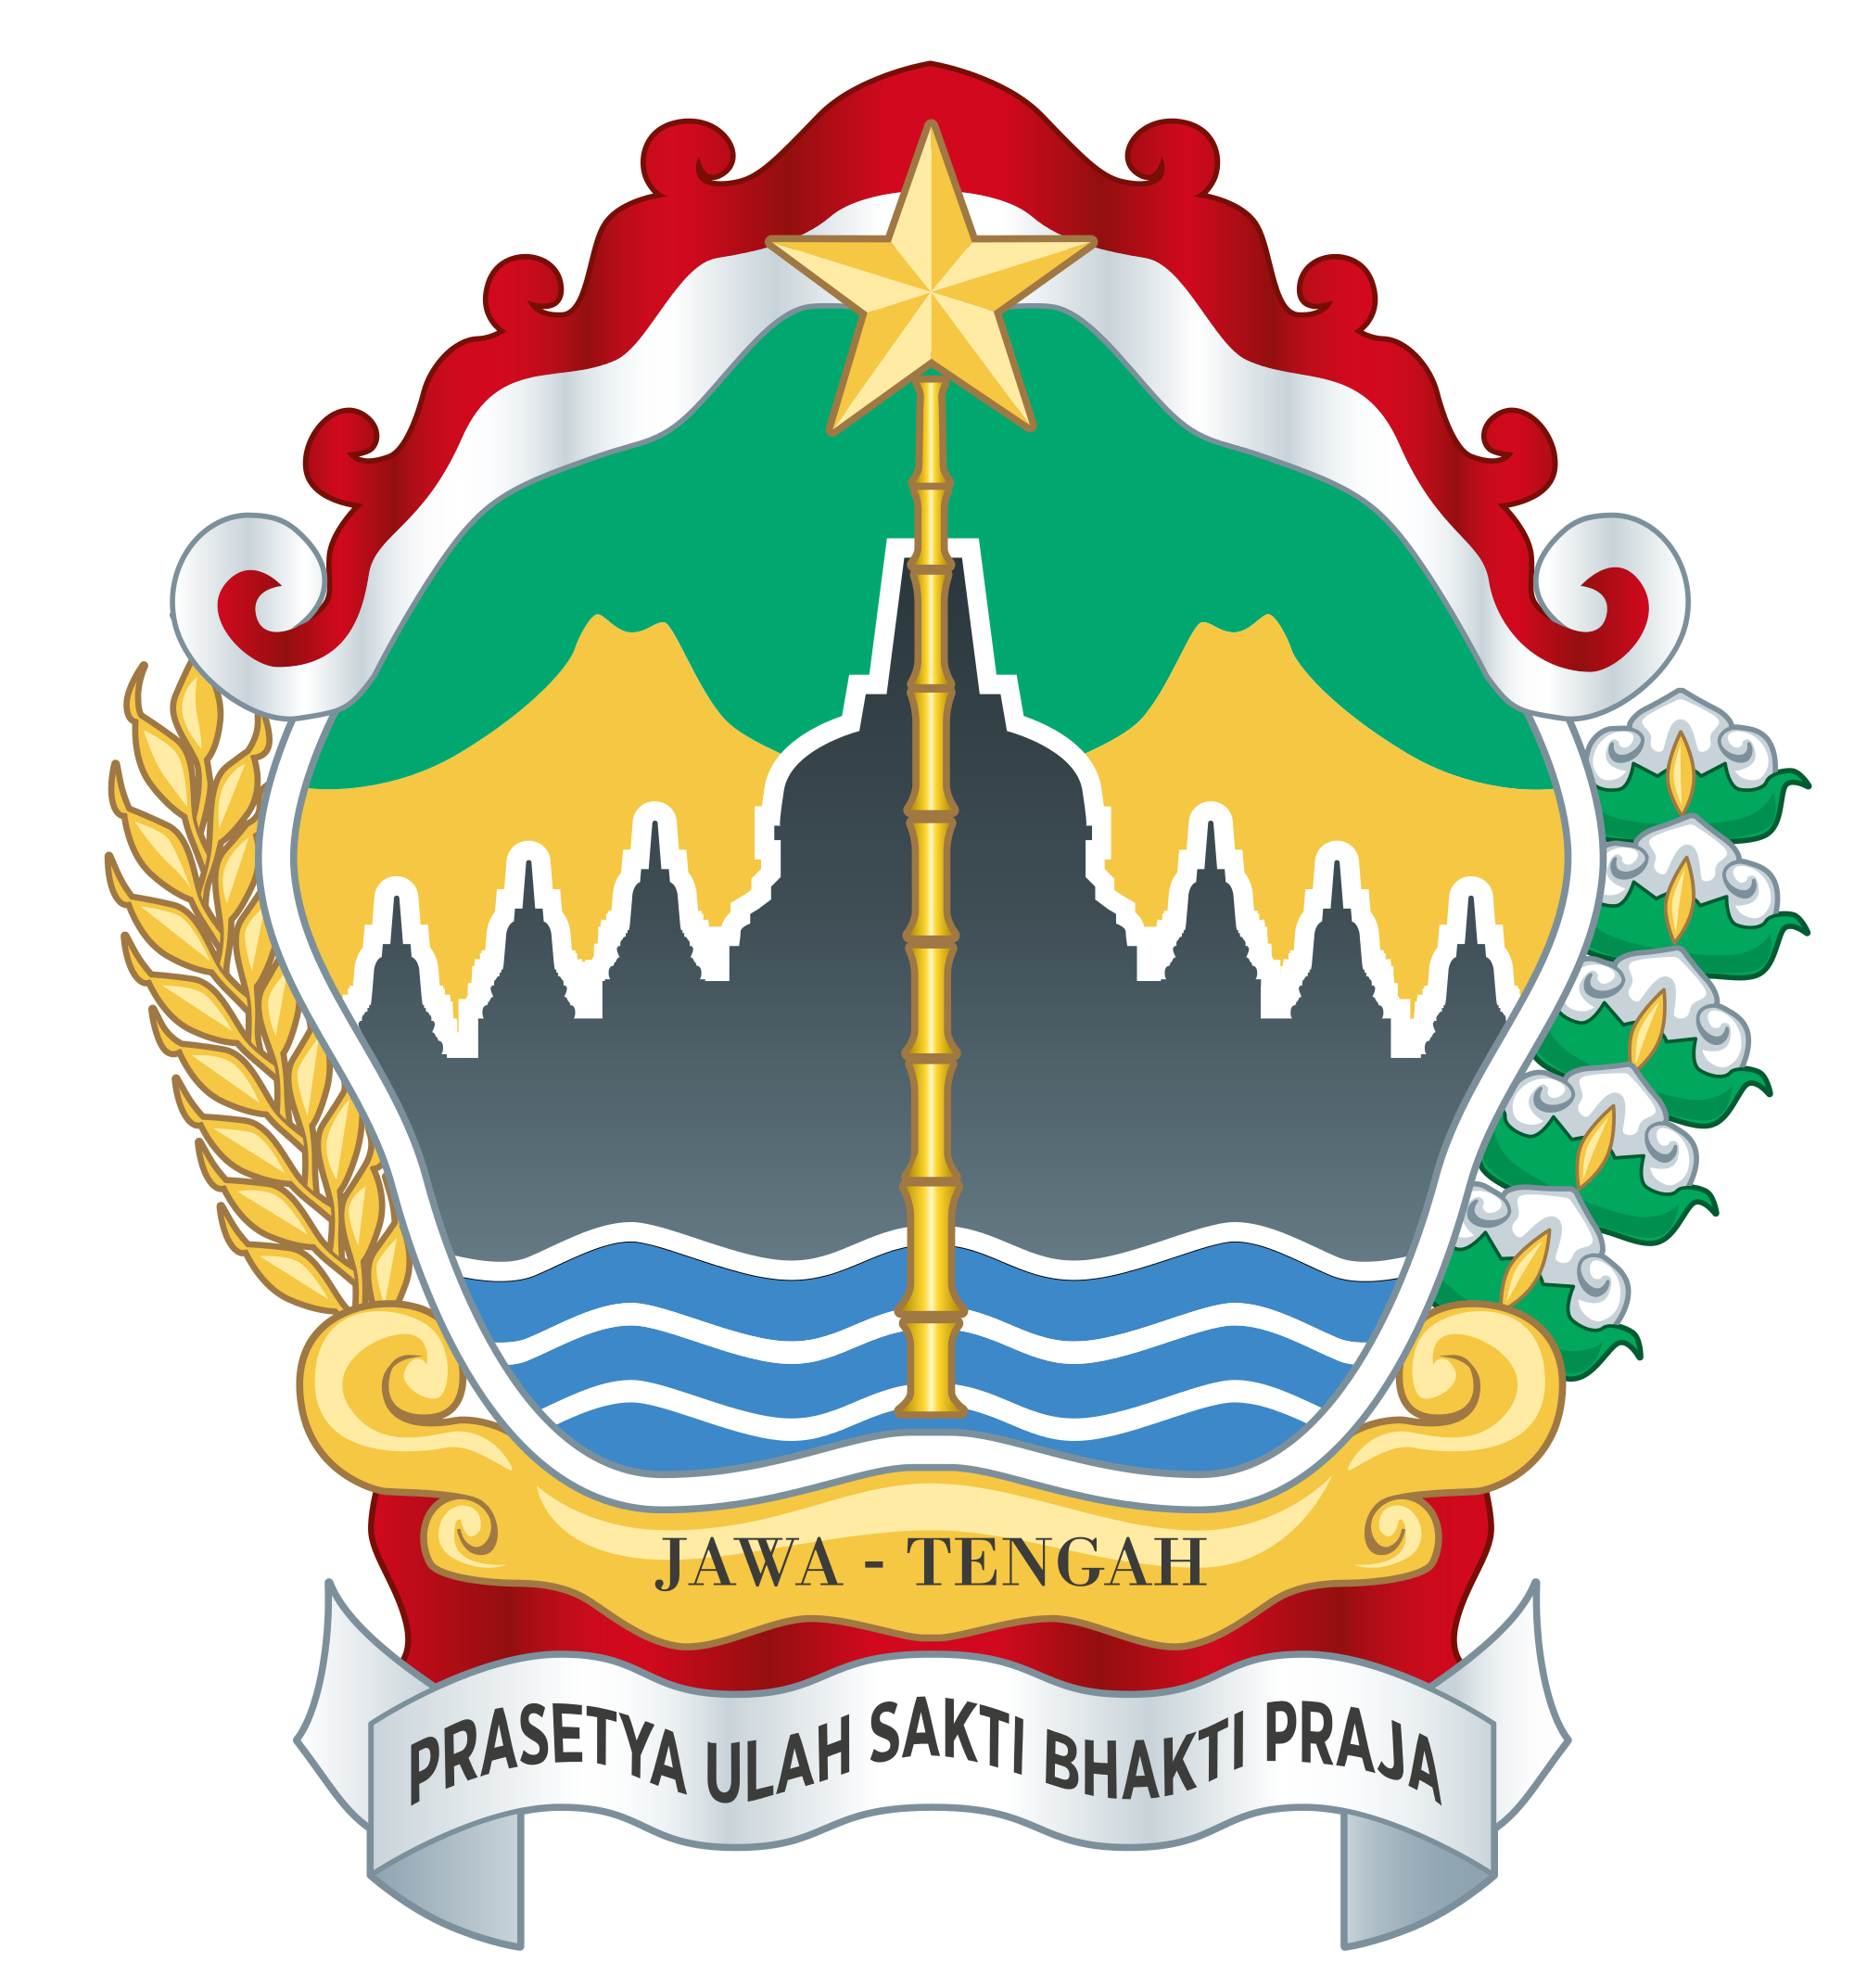 File:Coat of arms of Central Java.svg.